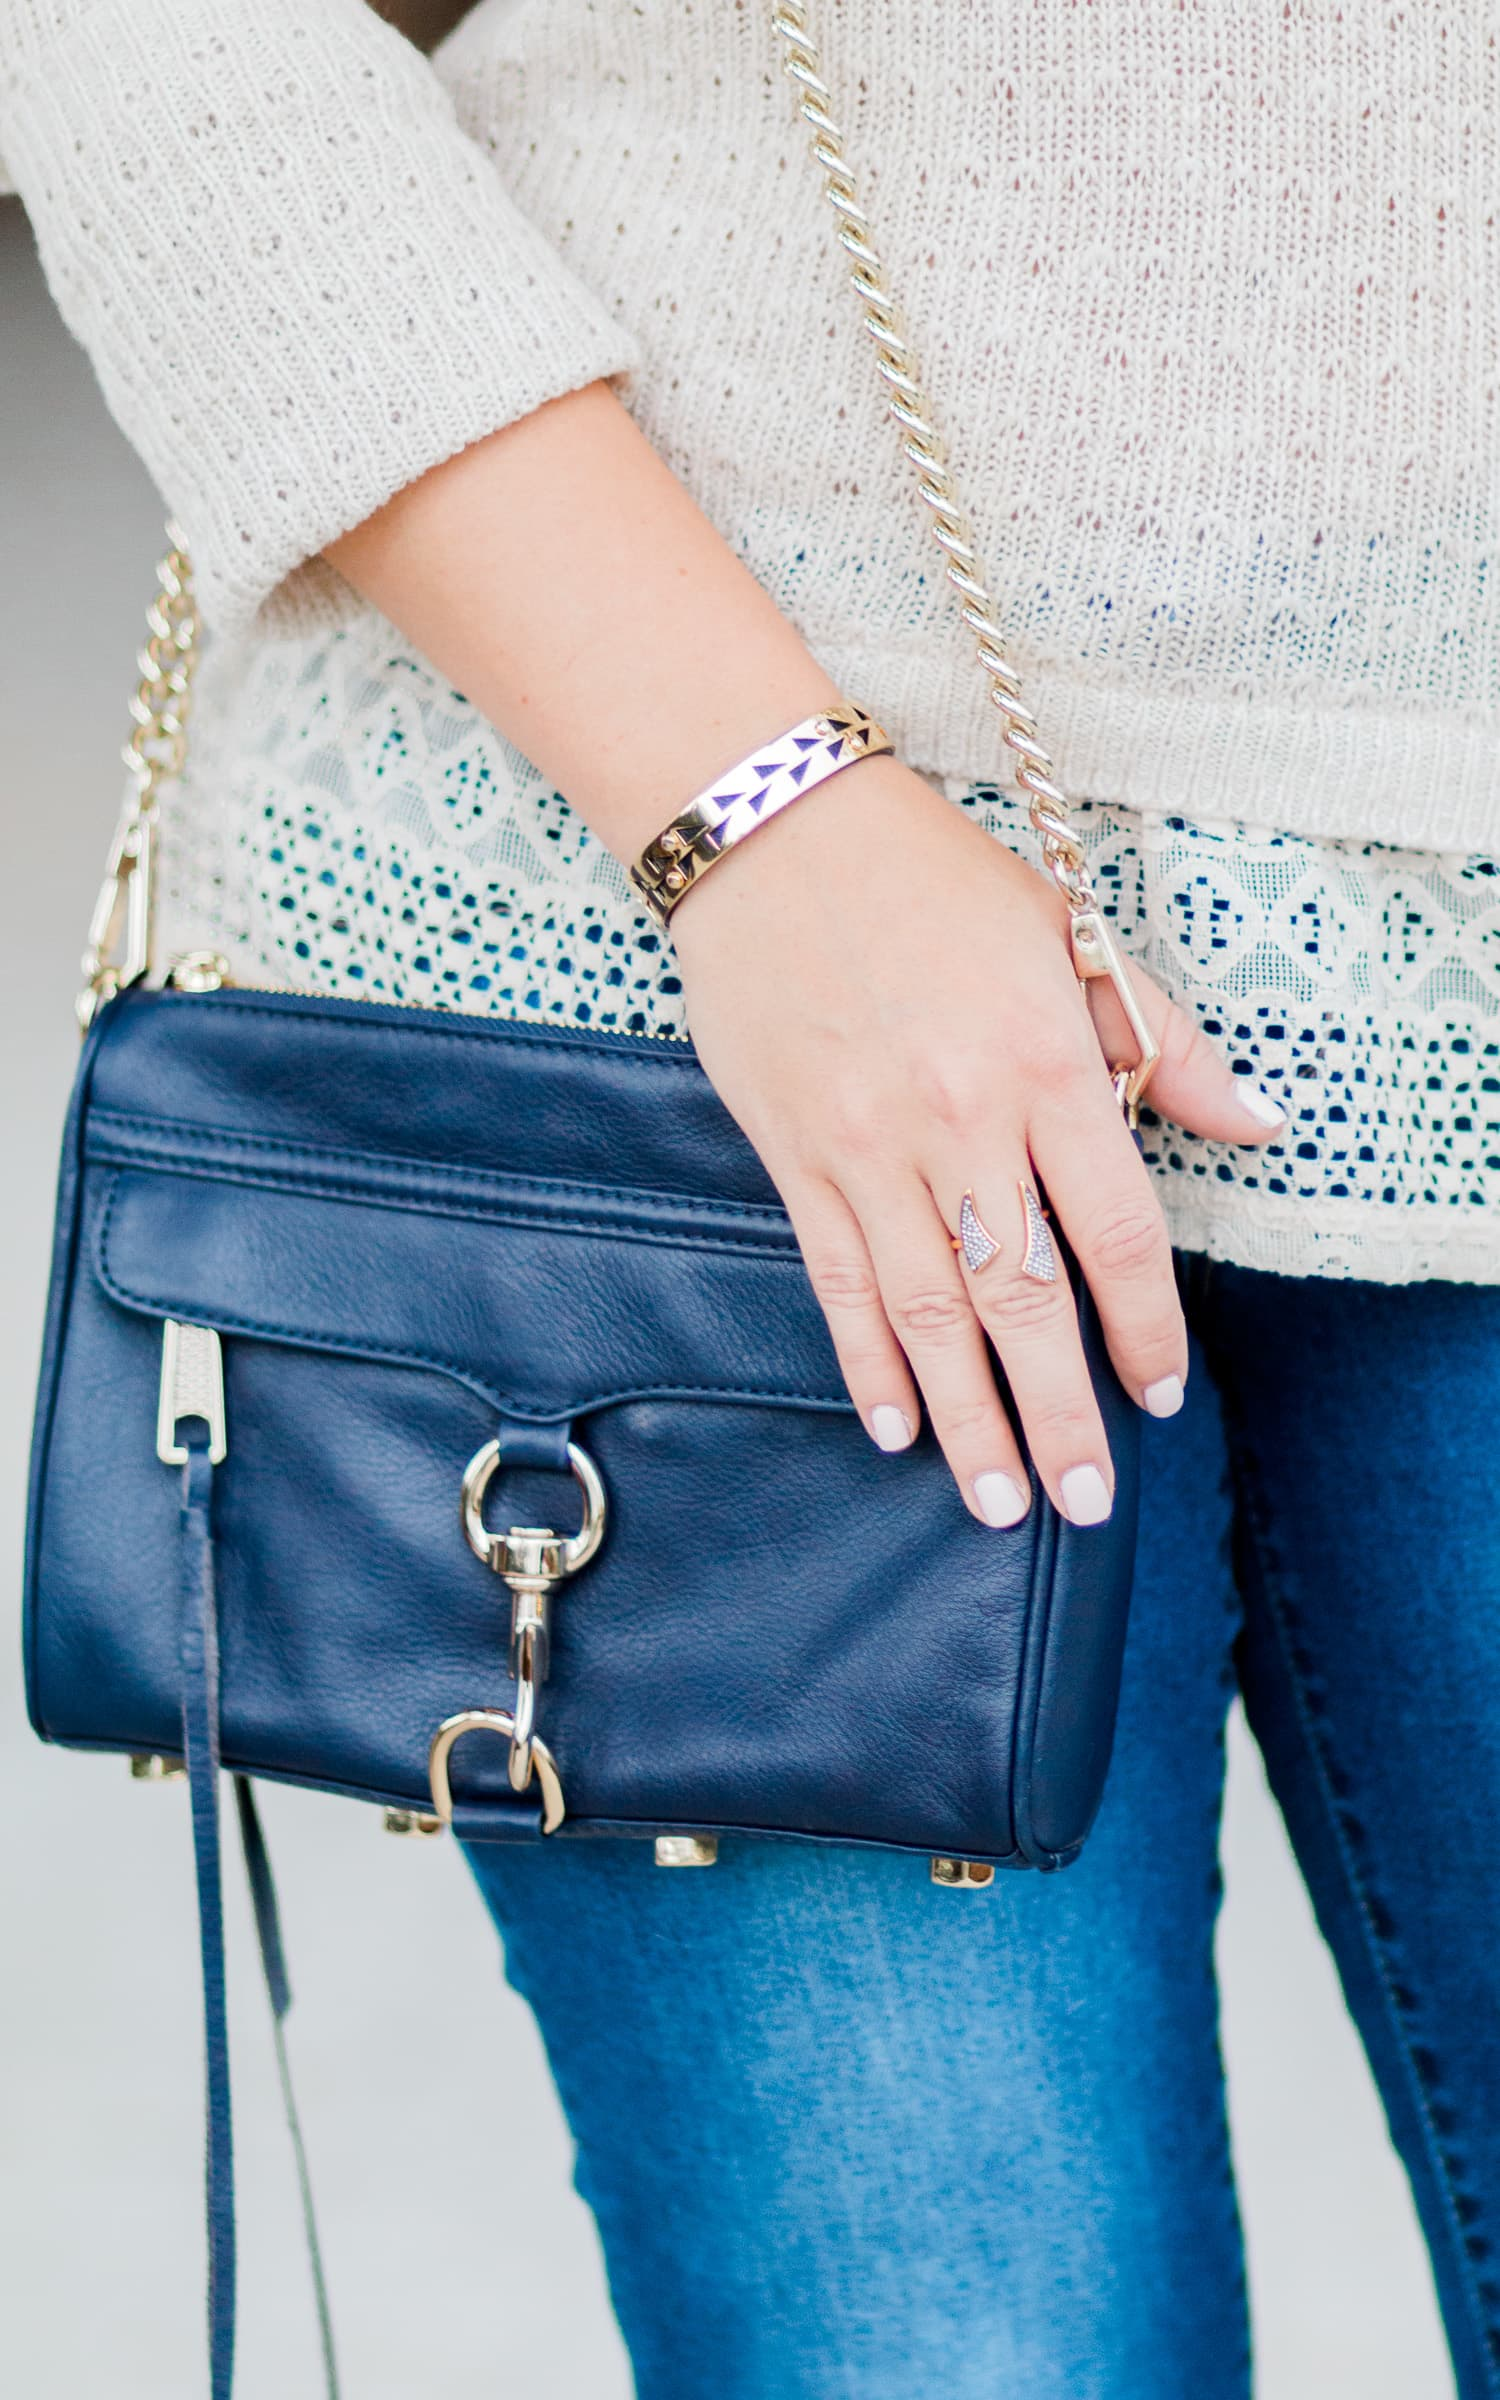 Rebecca Minkoff navy and gold Mini MAC crossbody bag styled with Stella & Dot Addison Cuff and Pave Horn Ring styled into a cute fall outfit by style blogger Ashley Brooke Nicholas